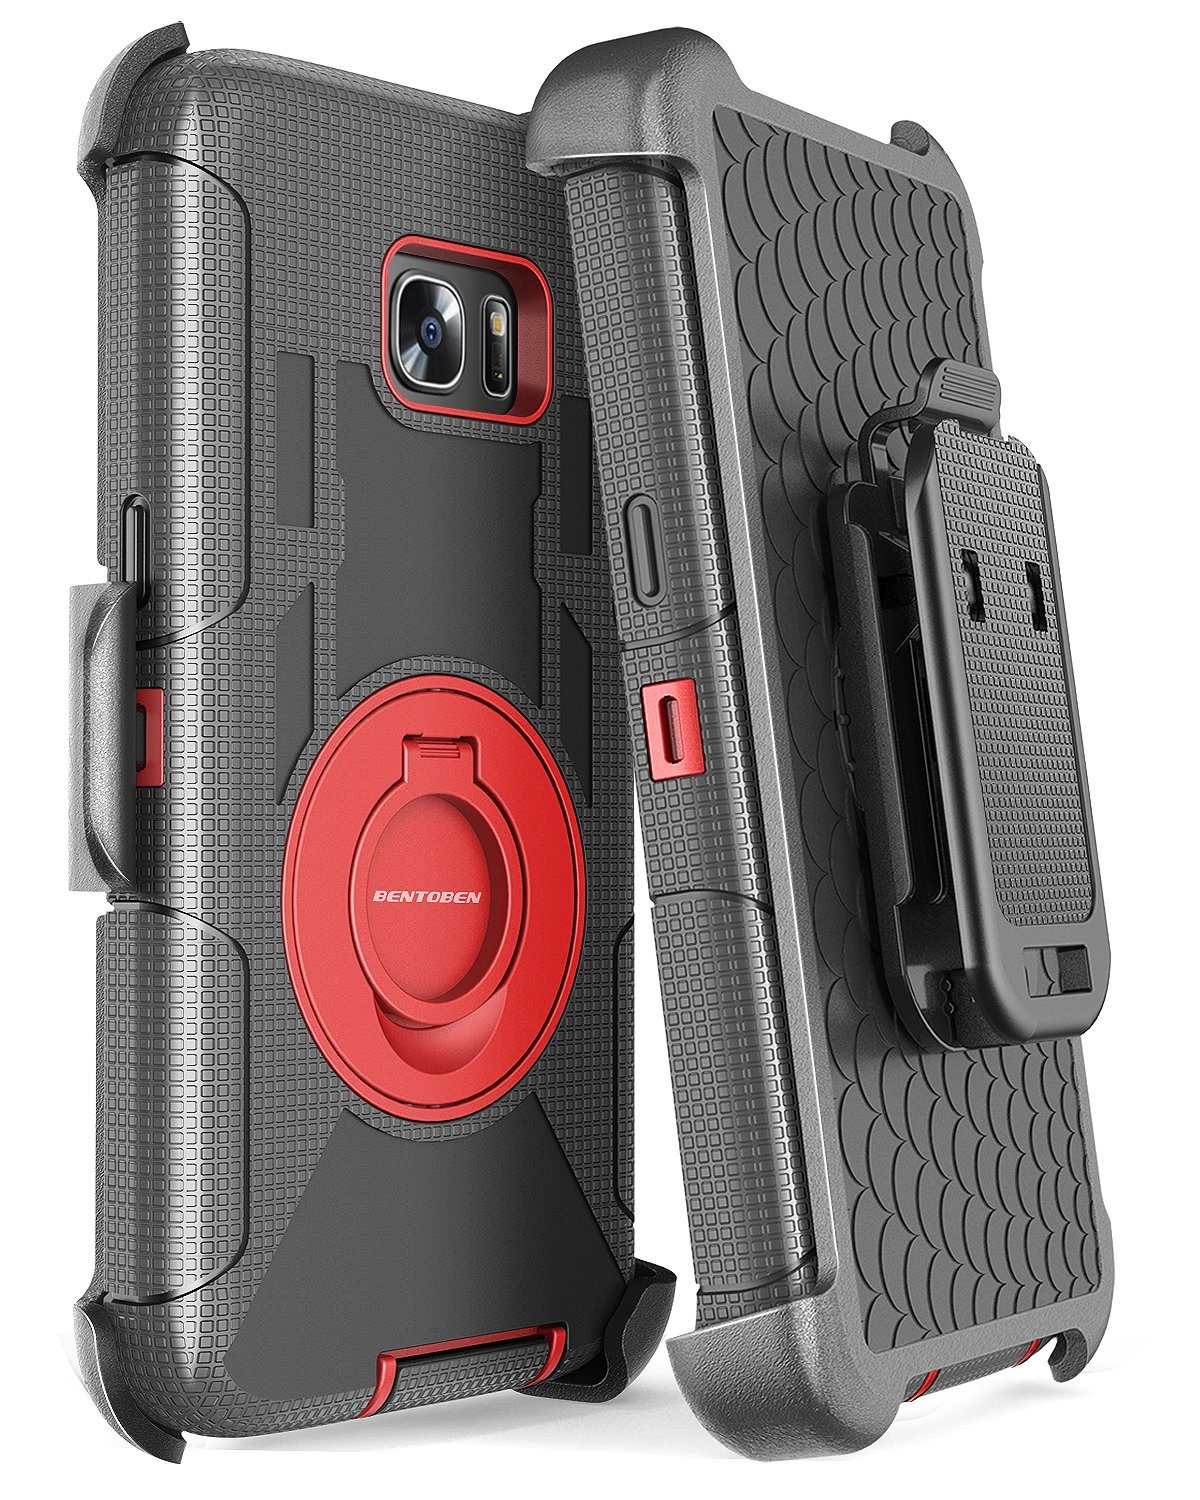 Galaxy S7 Edge Case, BENTOBEN Heavy Duty Shockproof Full Body Rugged Hybrid Protective Case for Samsung Galaxy S7 Edge with Kickstand Belt Clip Holster Cover, Black/Red by BENTOBEN